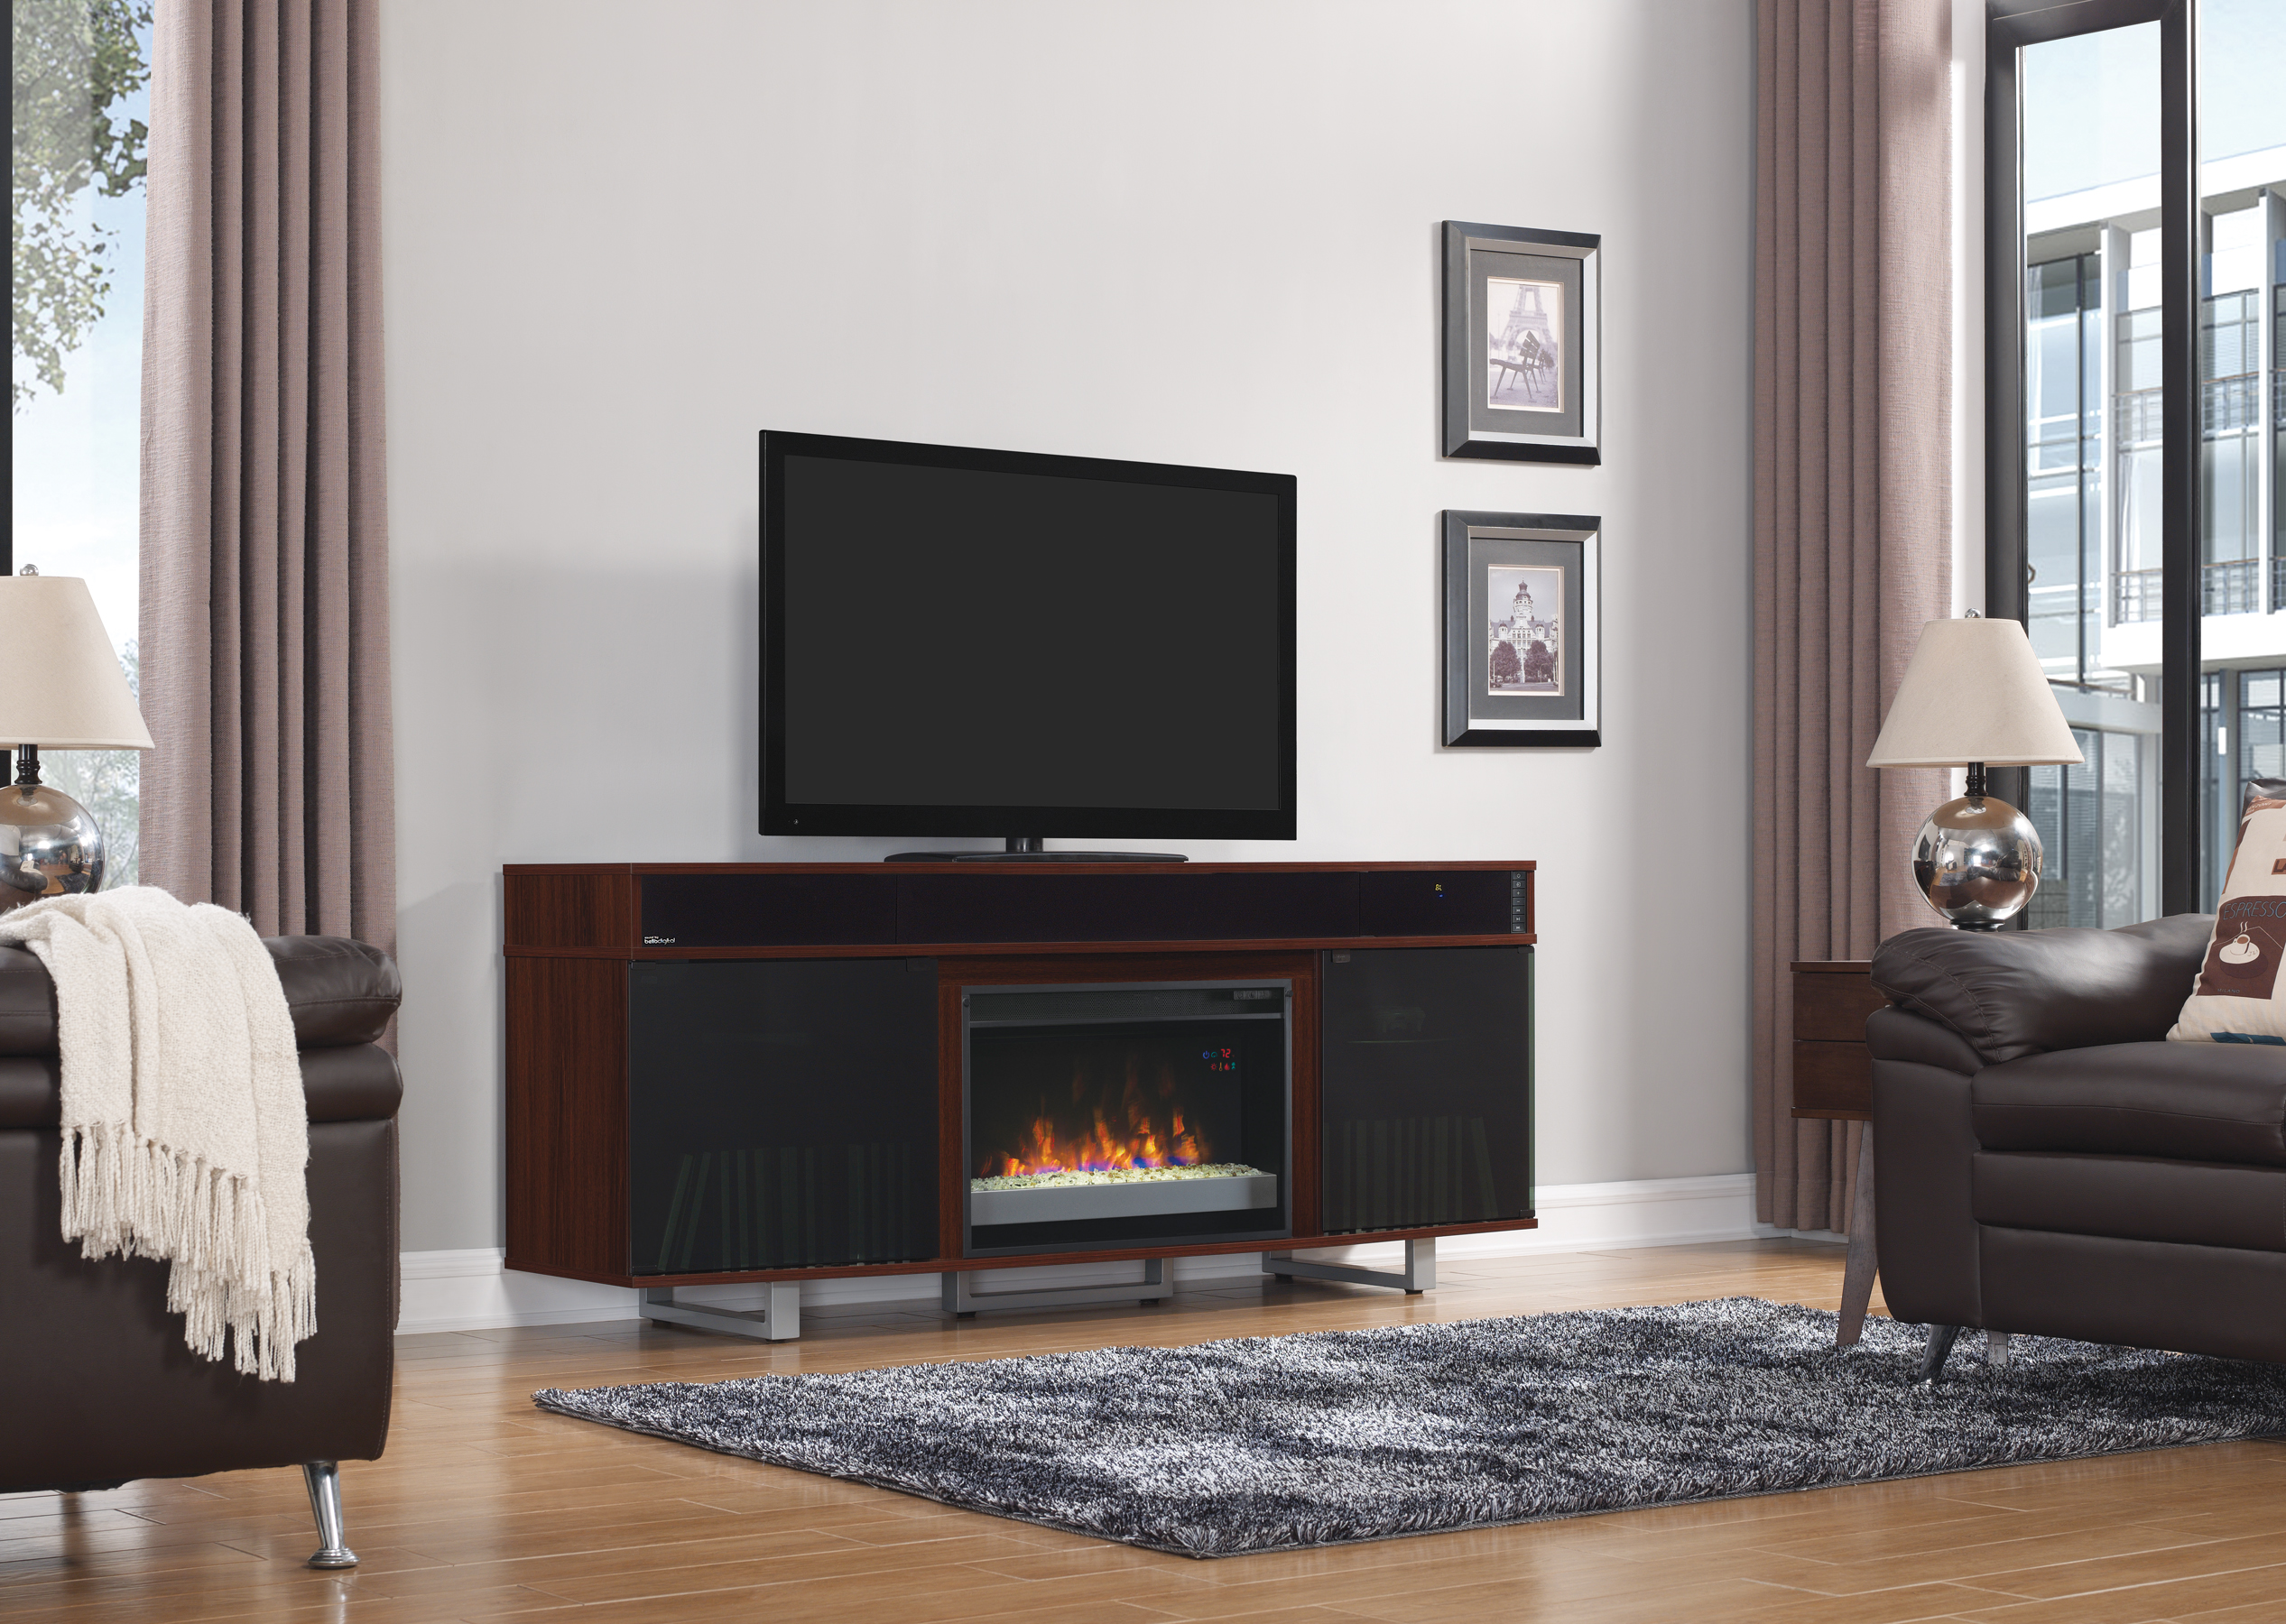 Rent classic flame enterprise fireplace tv stand cherry fireplaces furniture rental rent 2 own